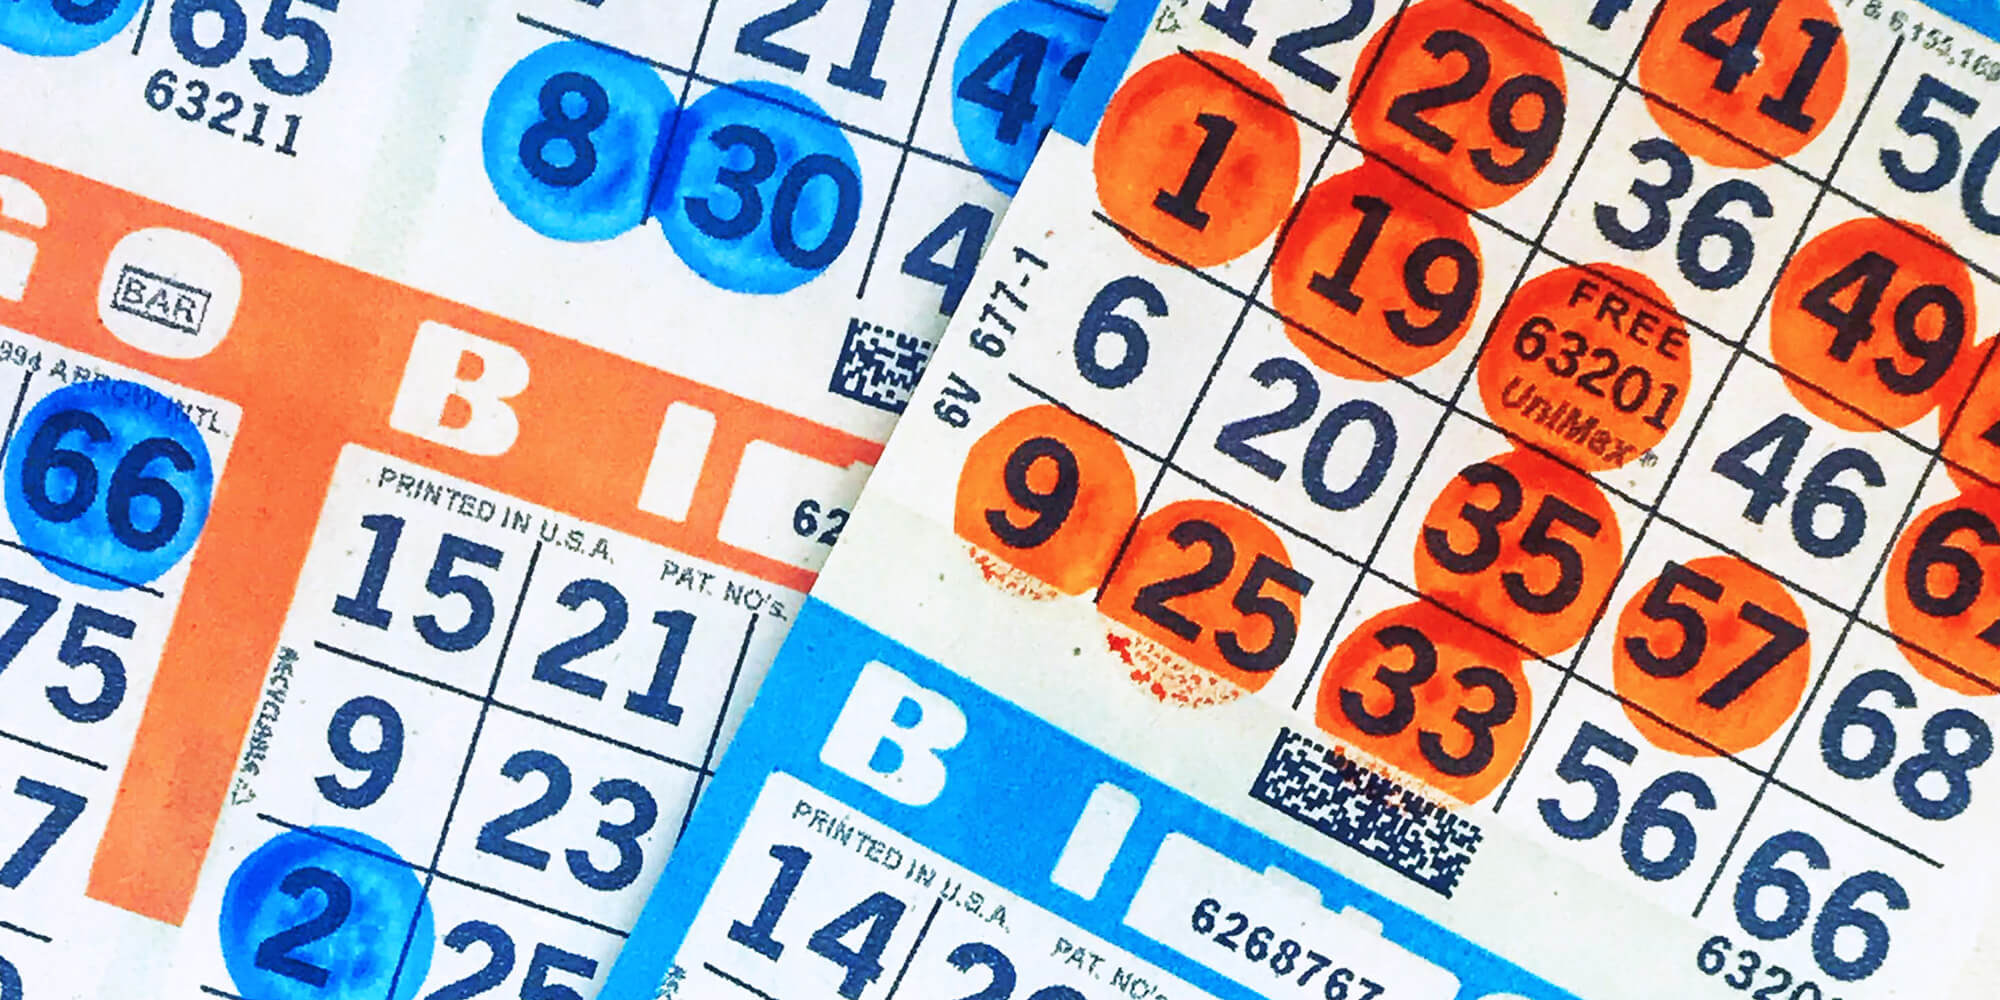 Bingo Game Ideas to Try at Your Next Bingo Event: Even Cover & Odd Cover